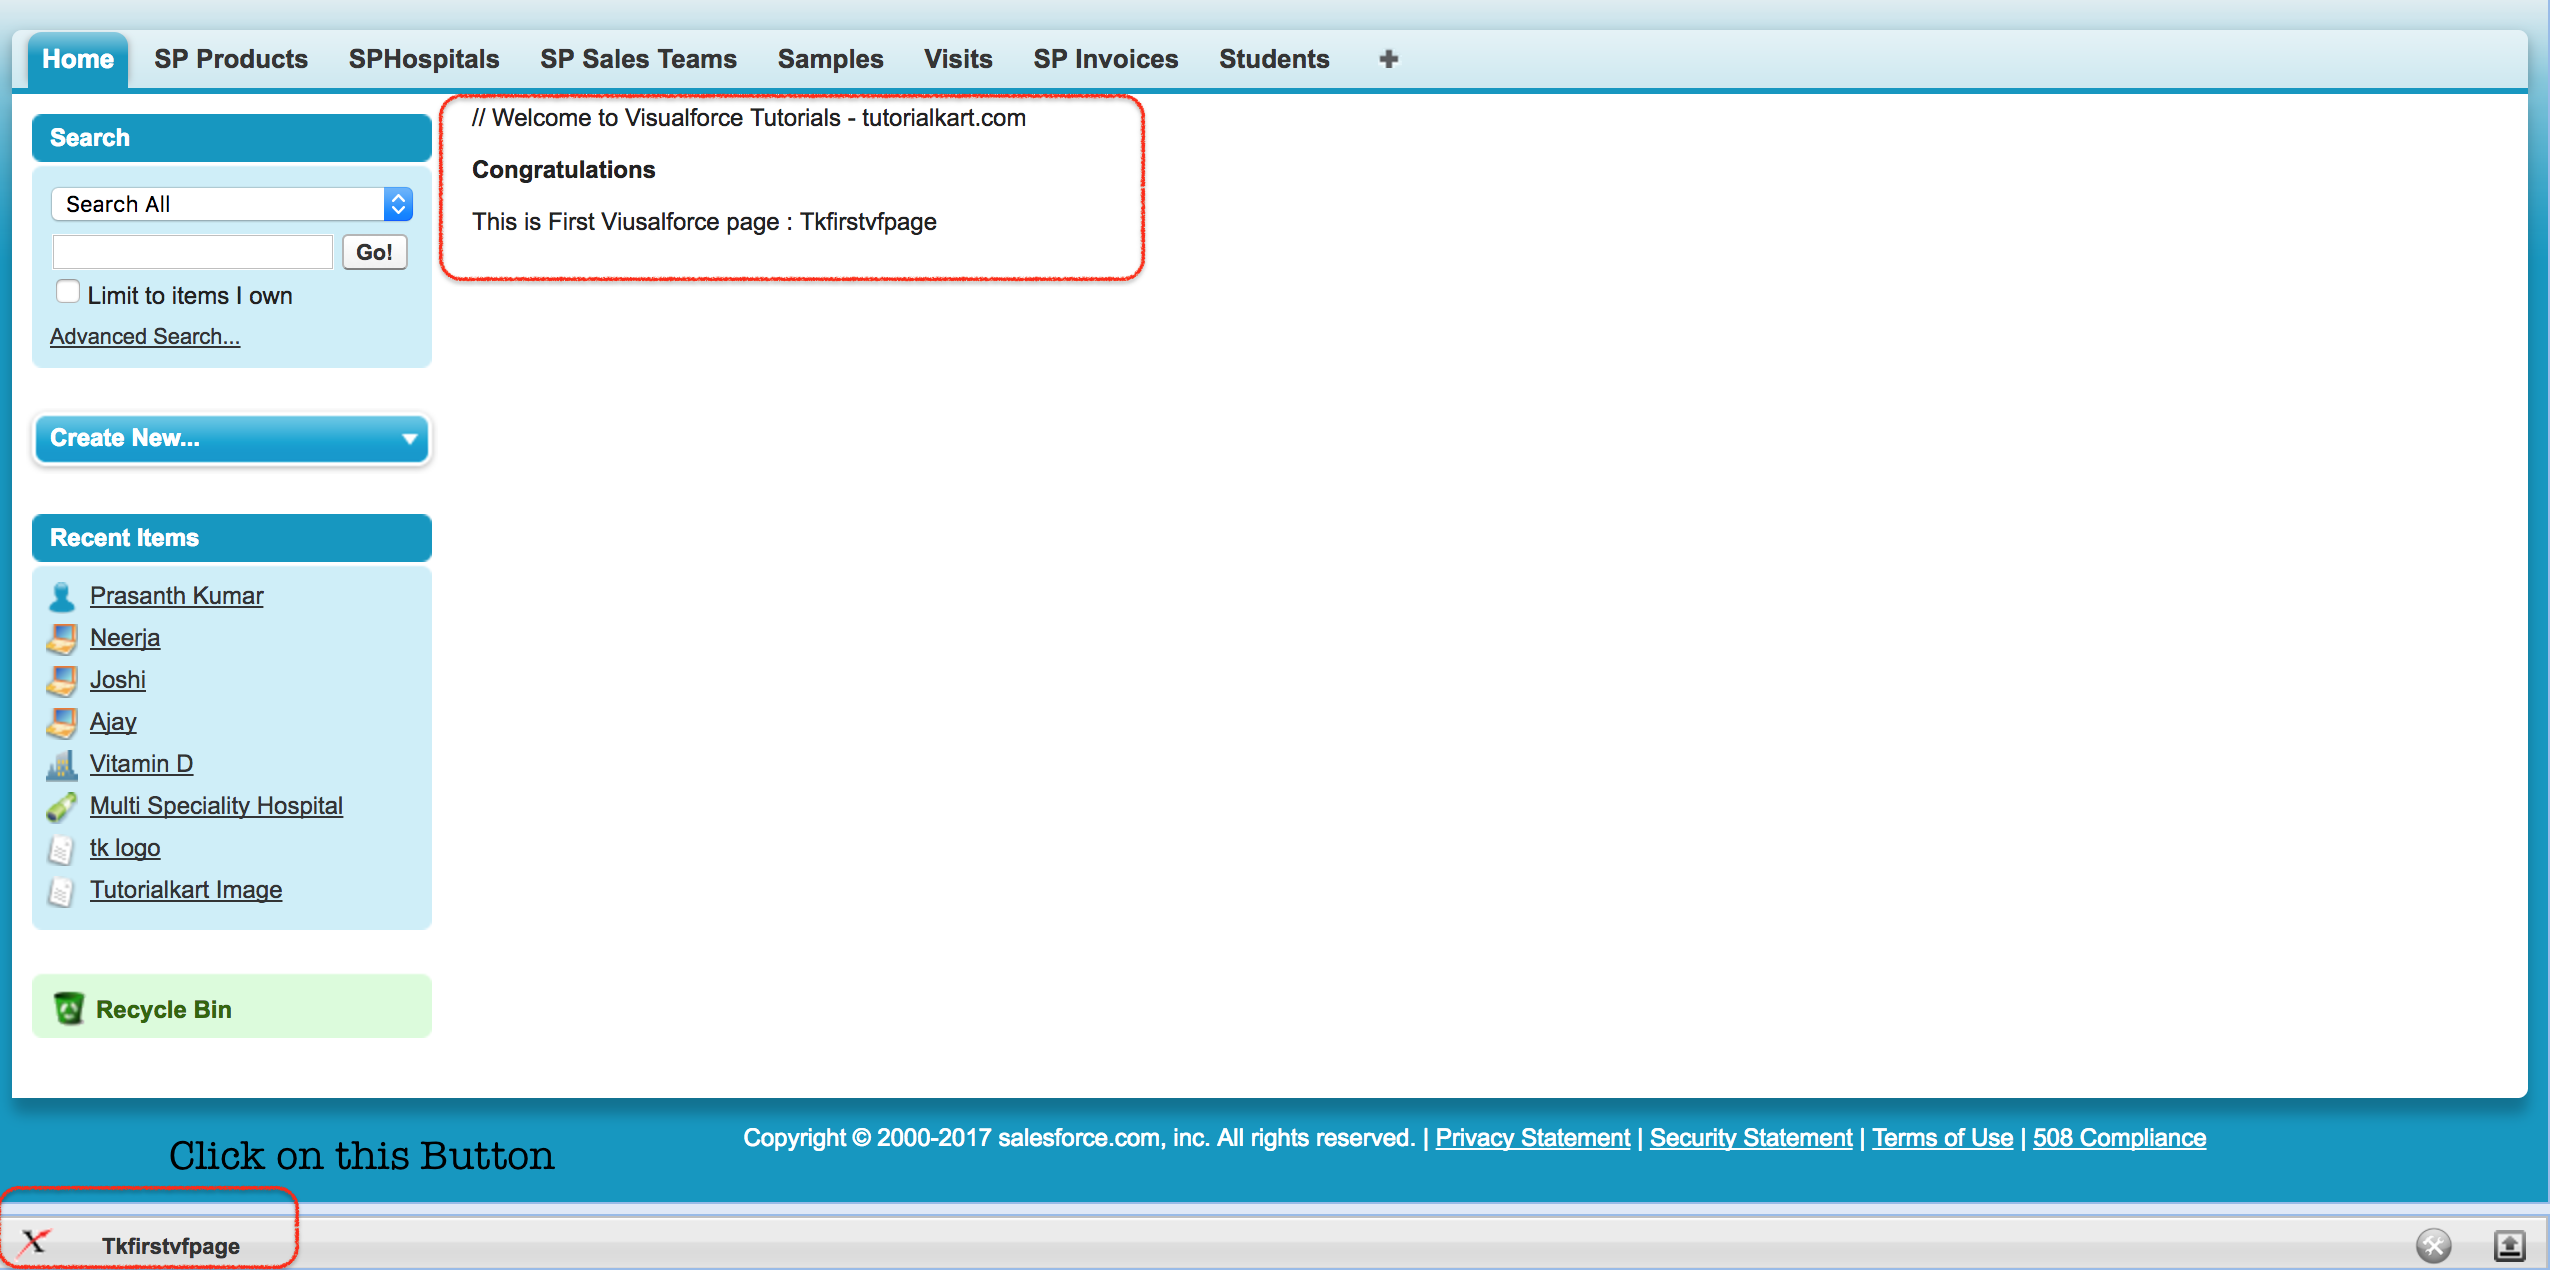 VisuALFORCE PAGE